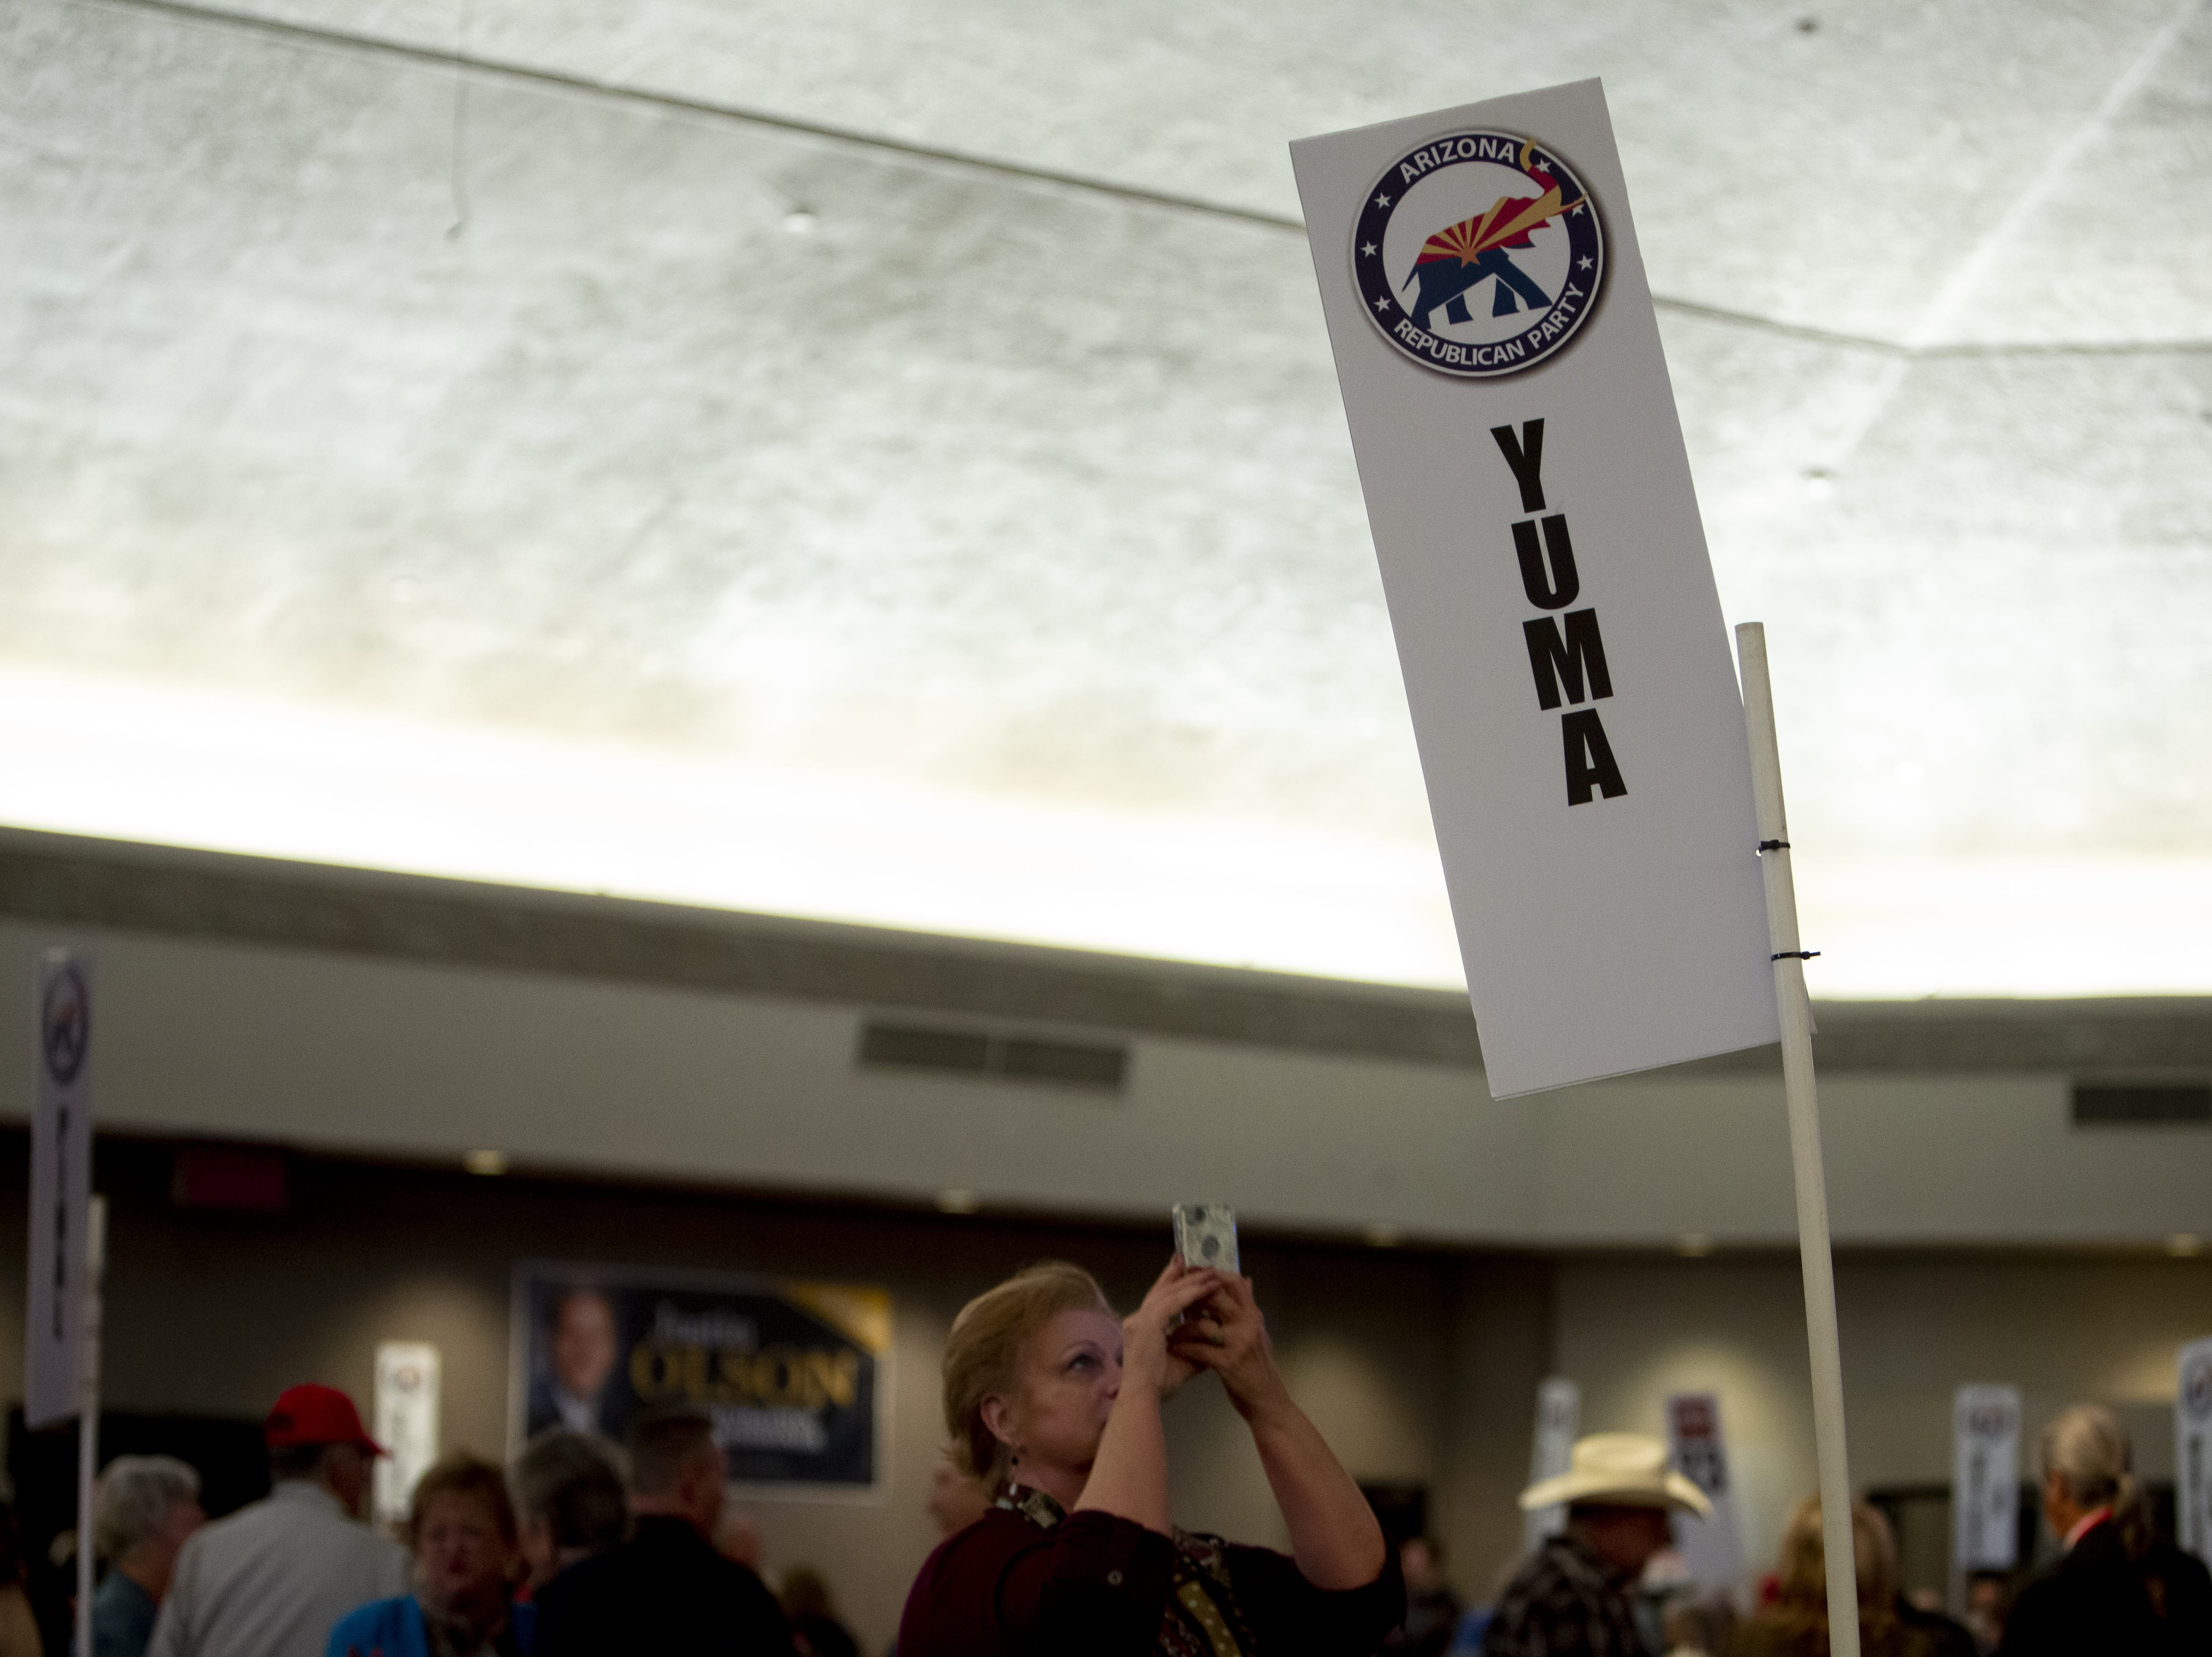 The crowd is divided into its districts with signs during the Statutory Meeting of the State Committee of the Arizona Republican Party at Church for the Nations on Saturday, Jan. 26, 2019.